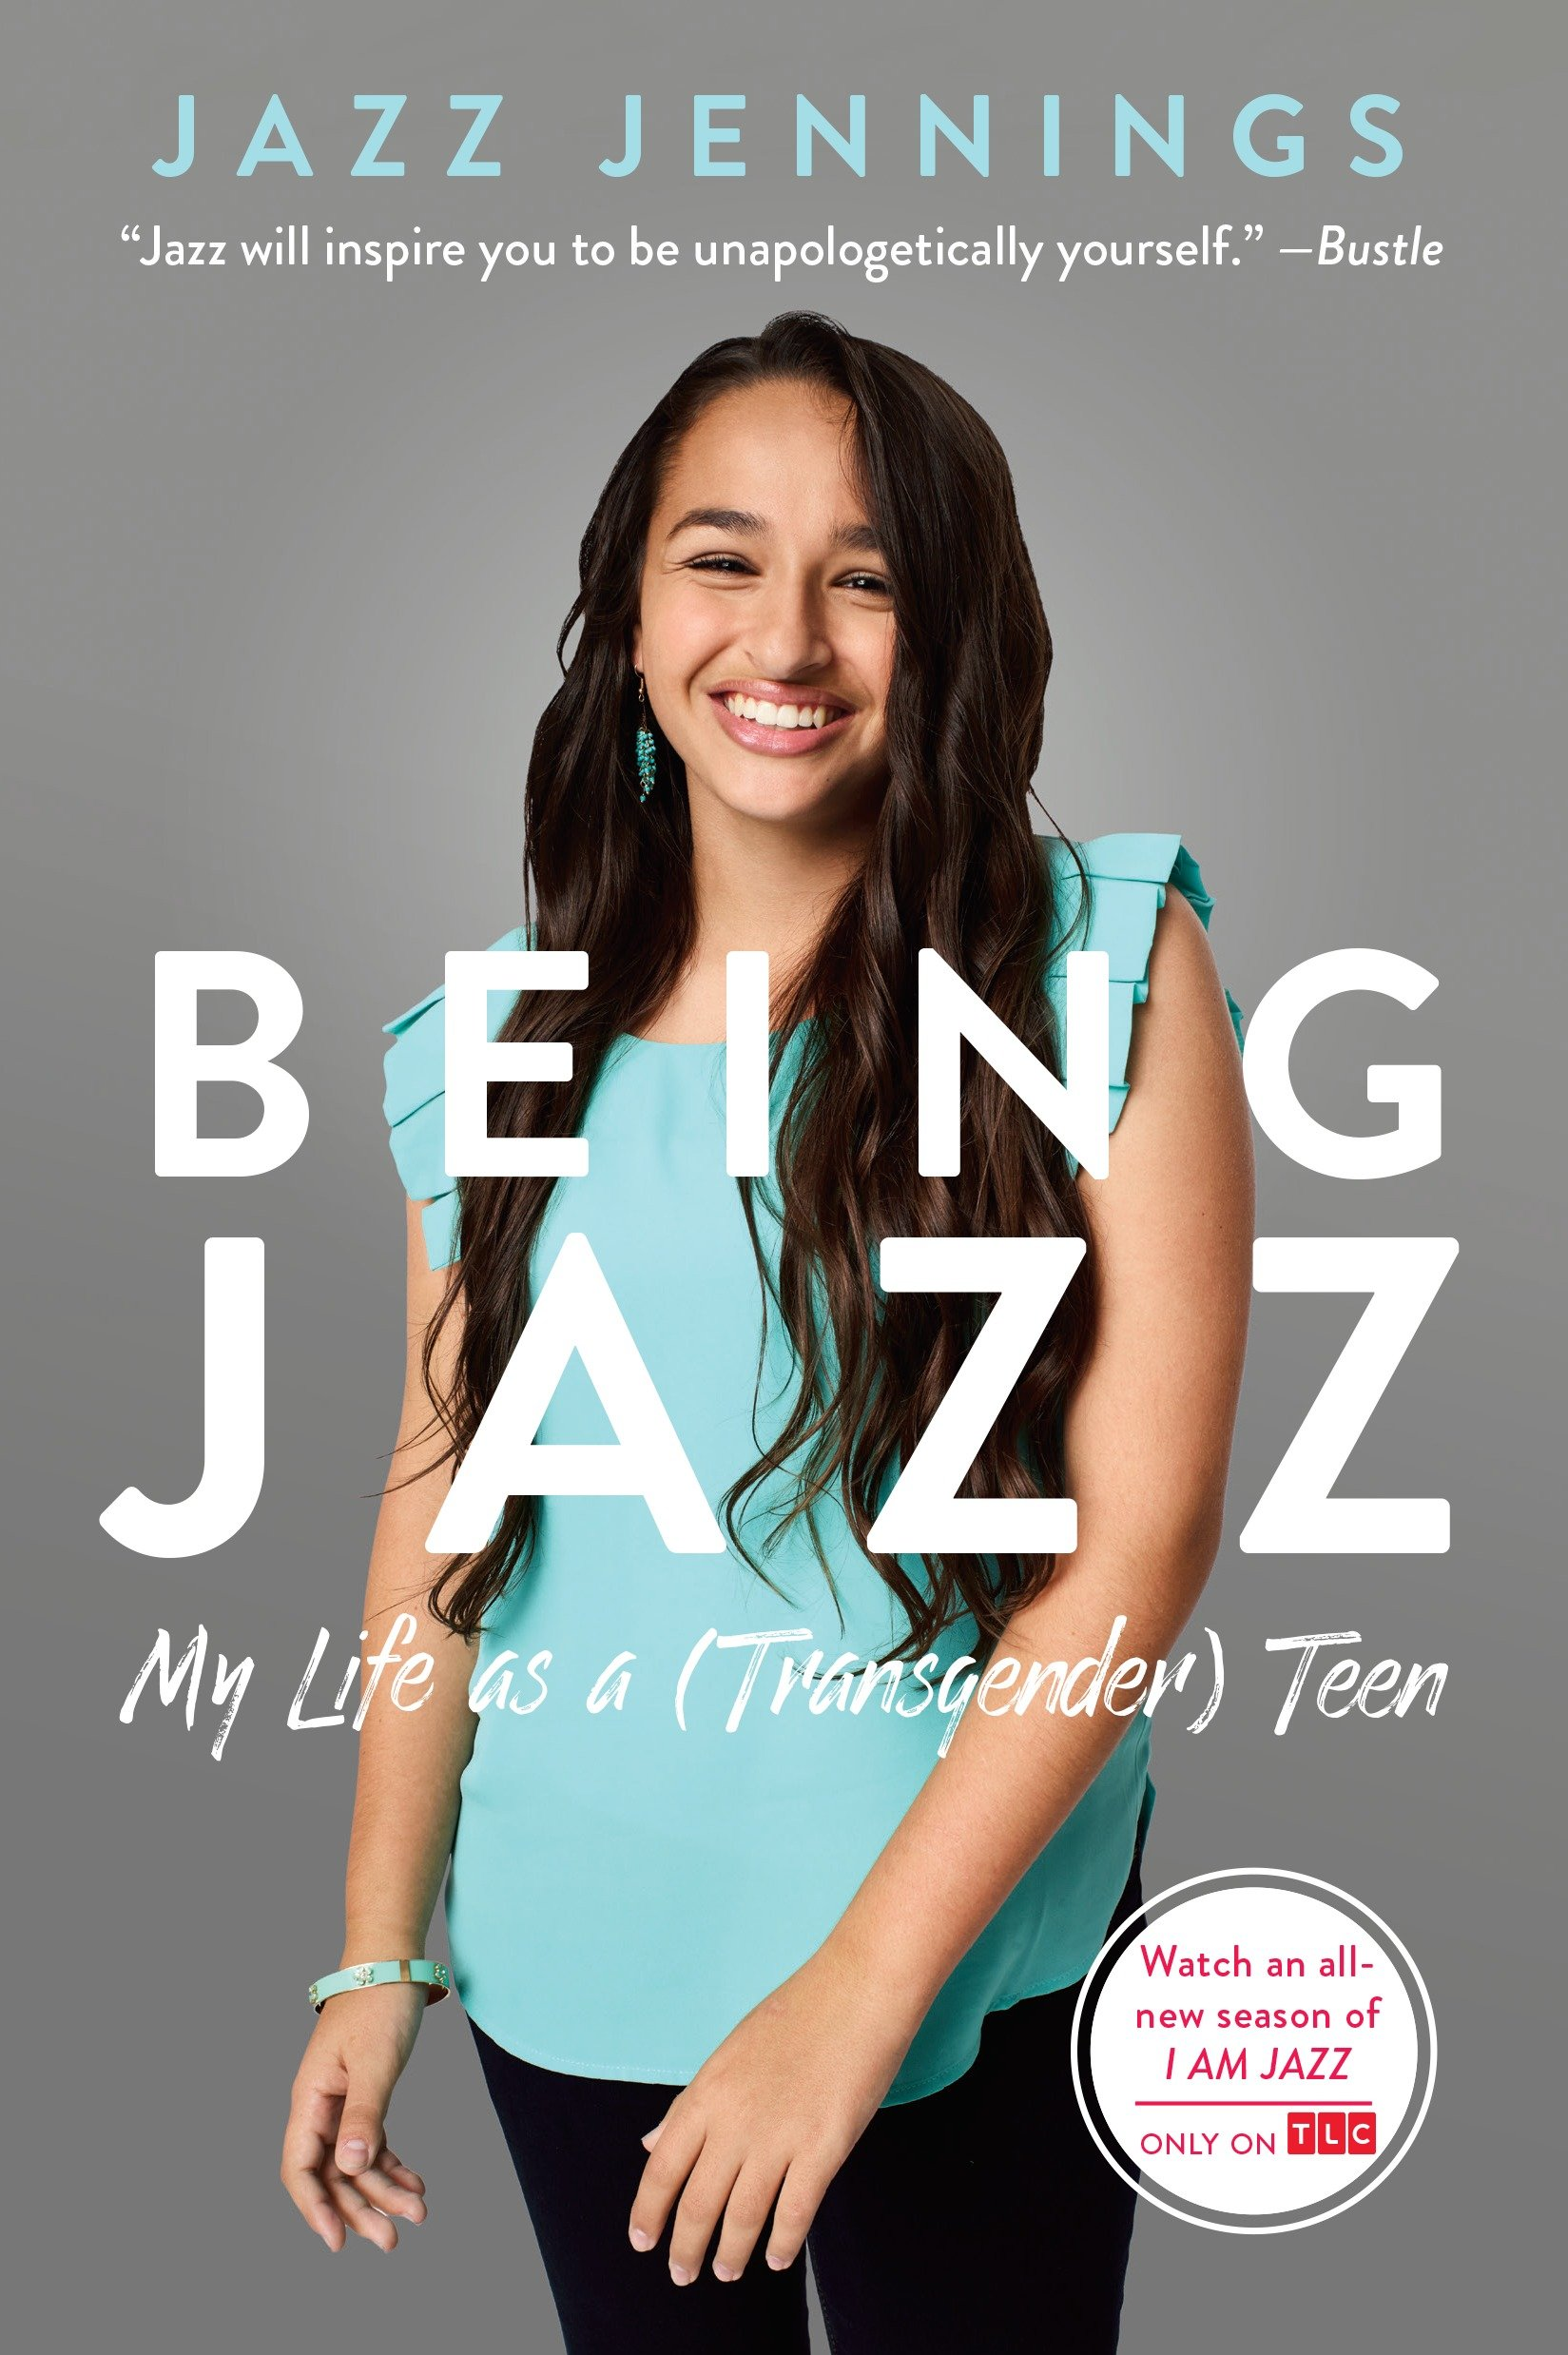 Being Jazz My Life as a (Transgender) Teen